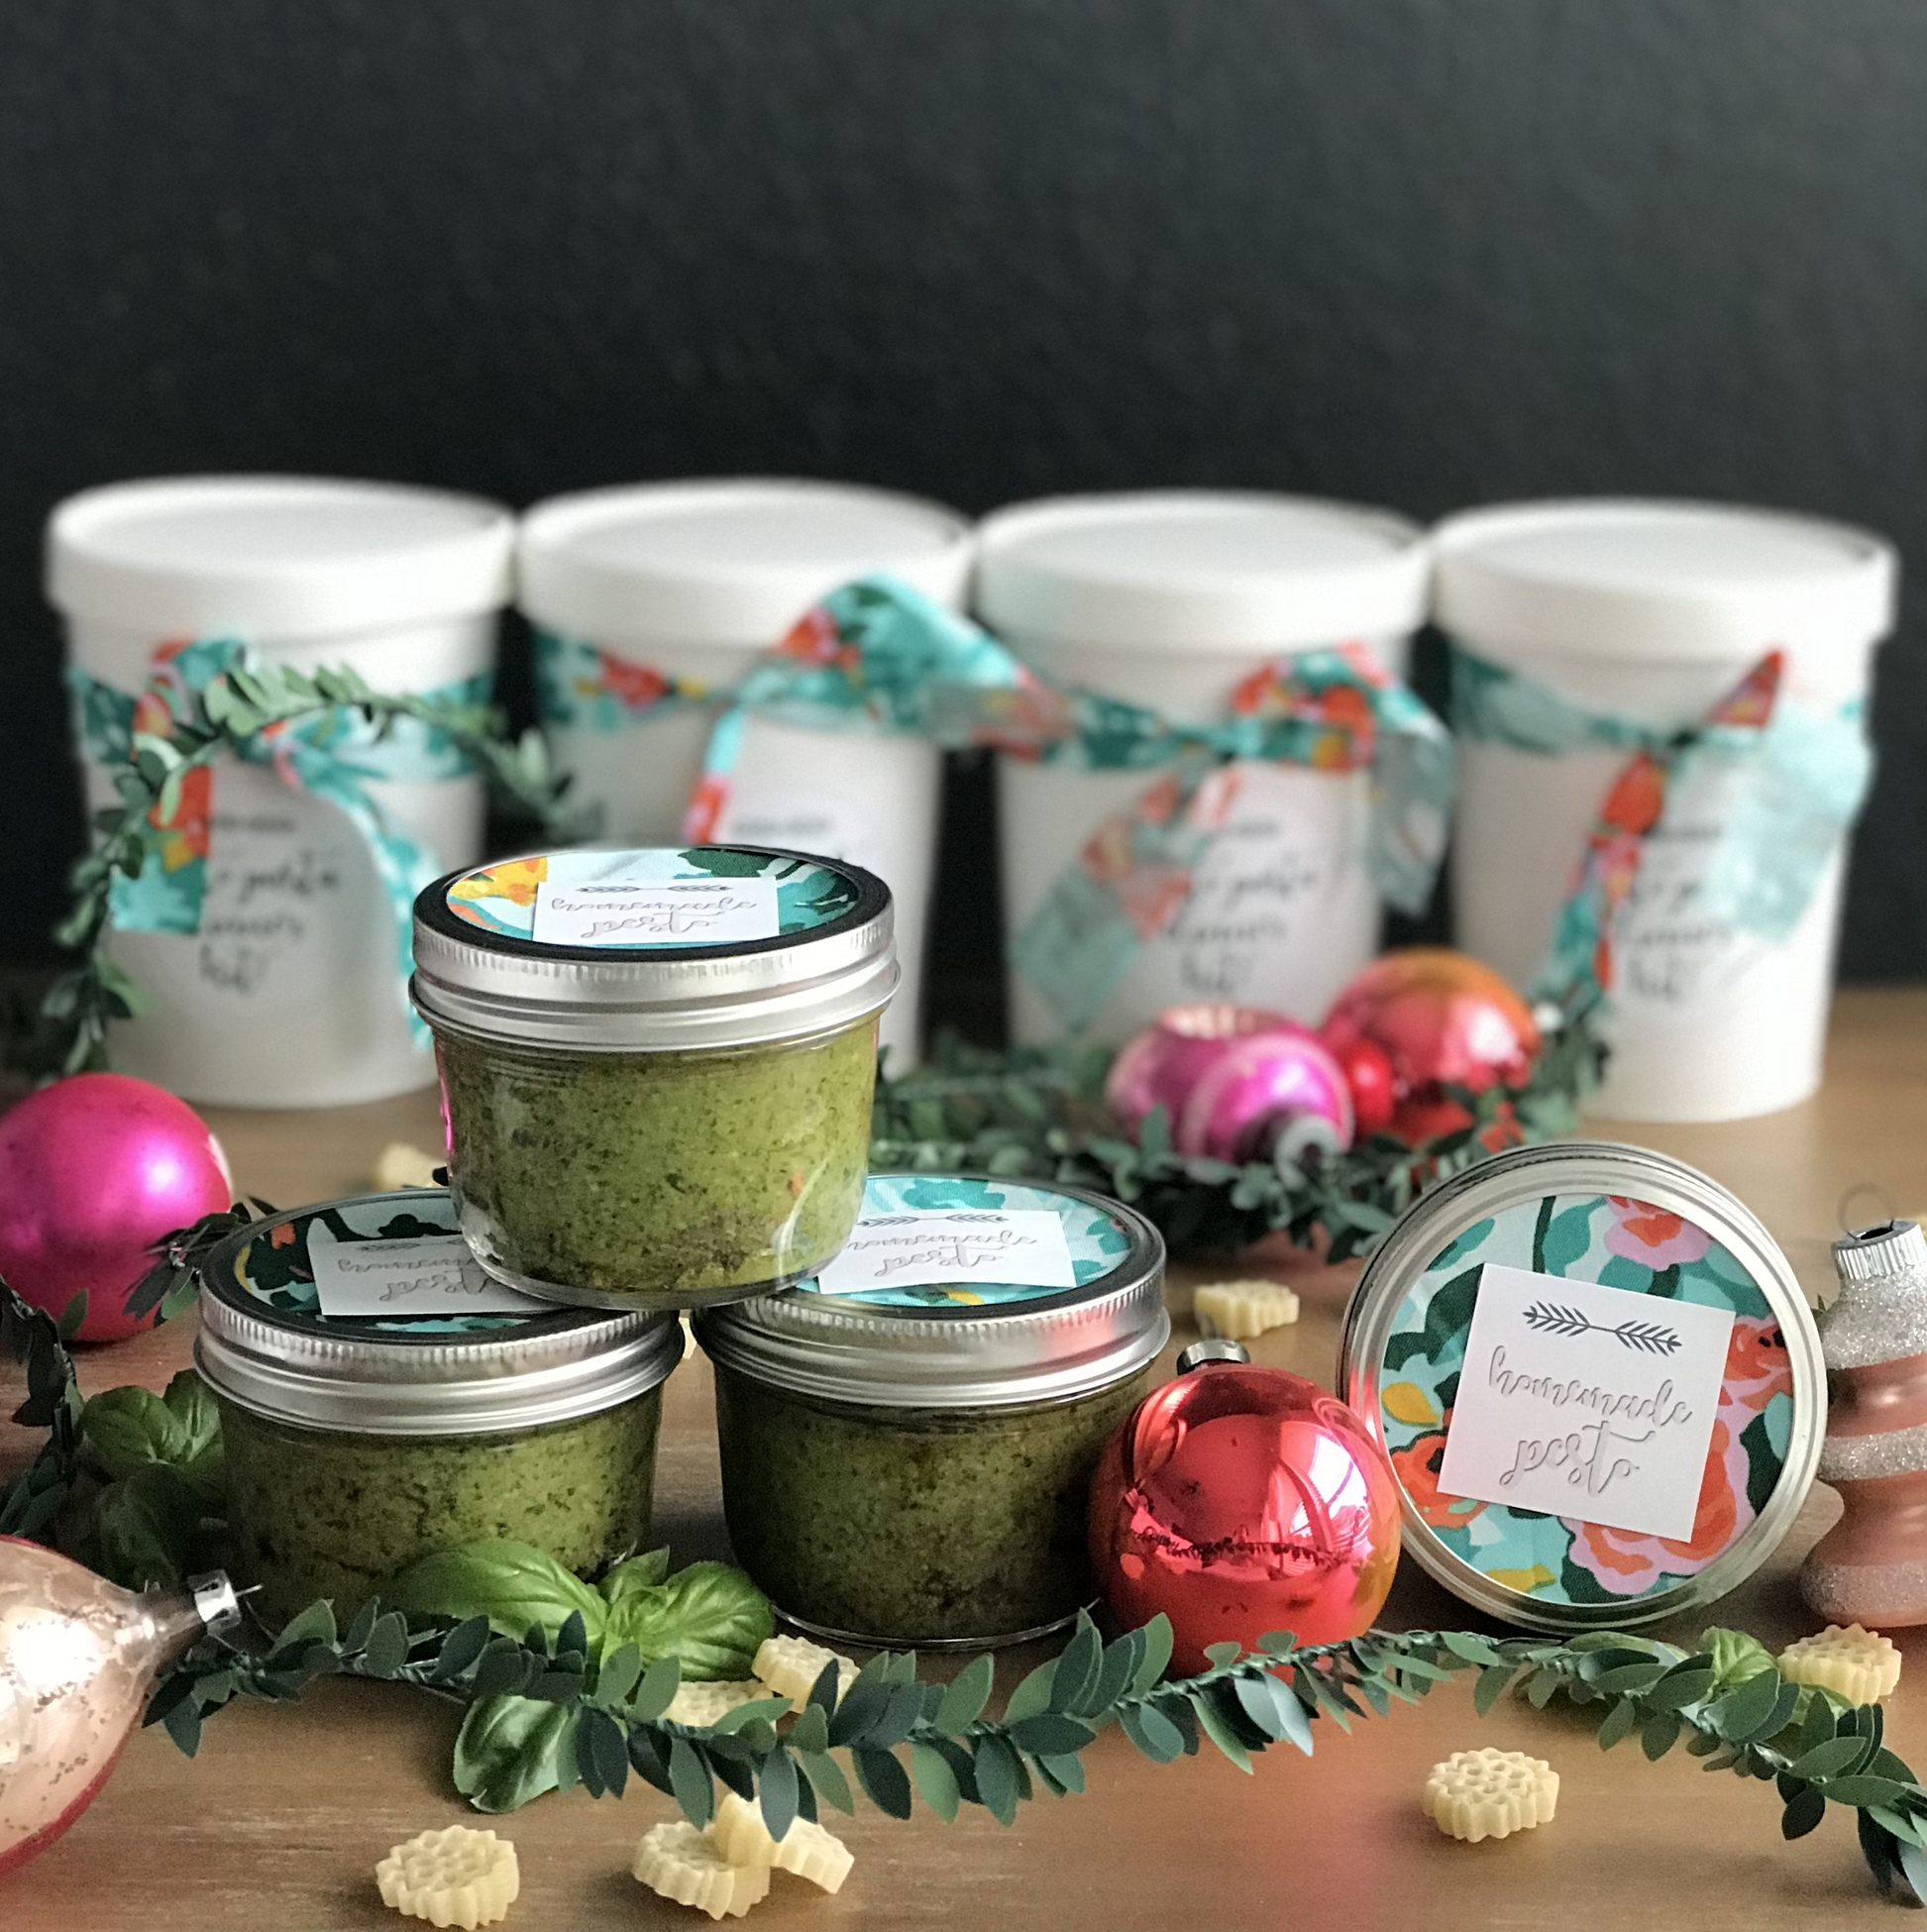 edible Christmas gift idea- pesto pasta dinner kit